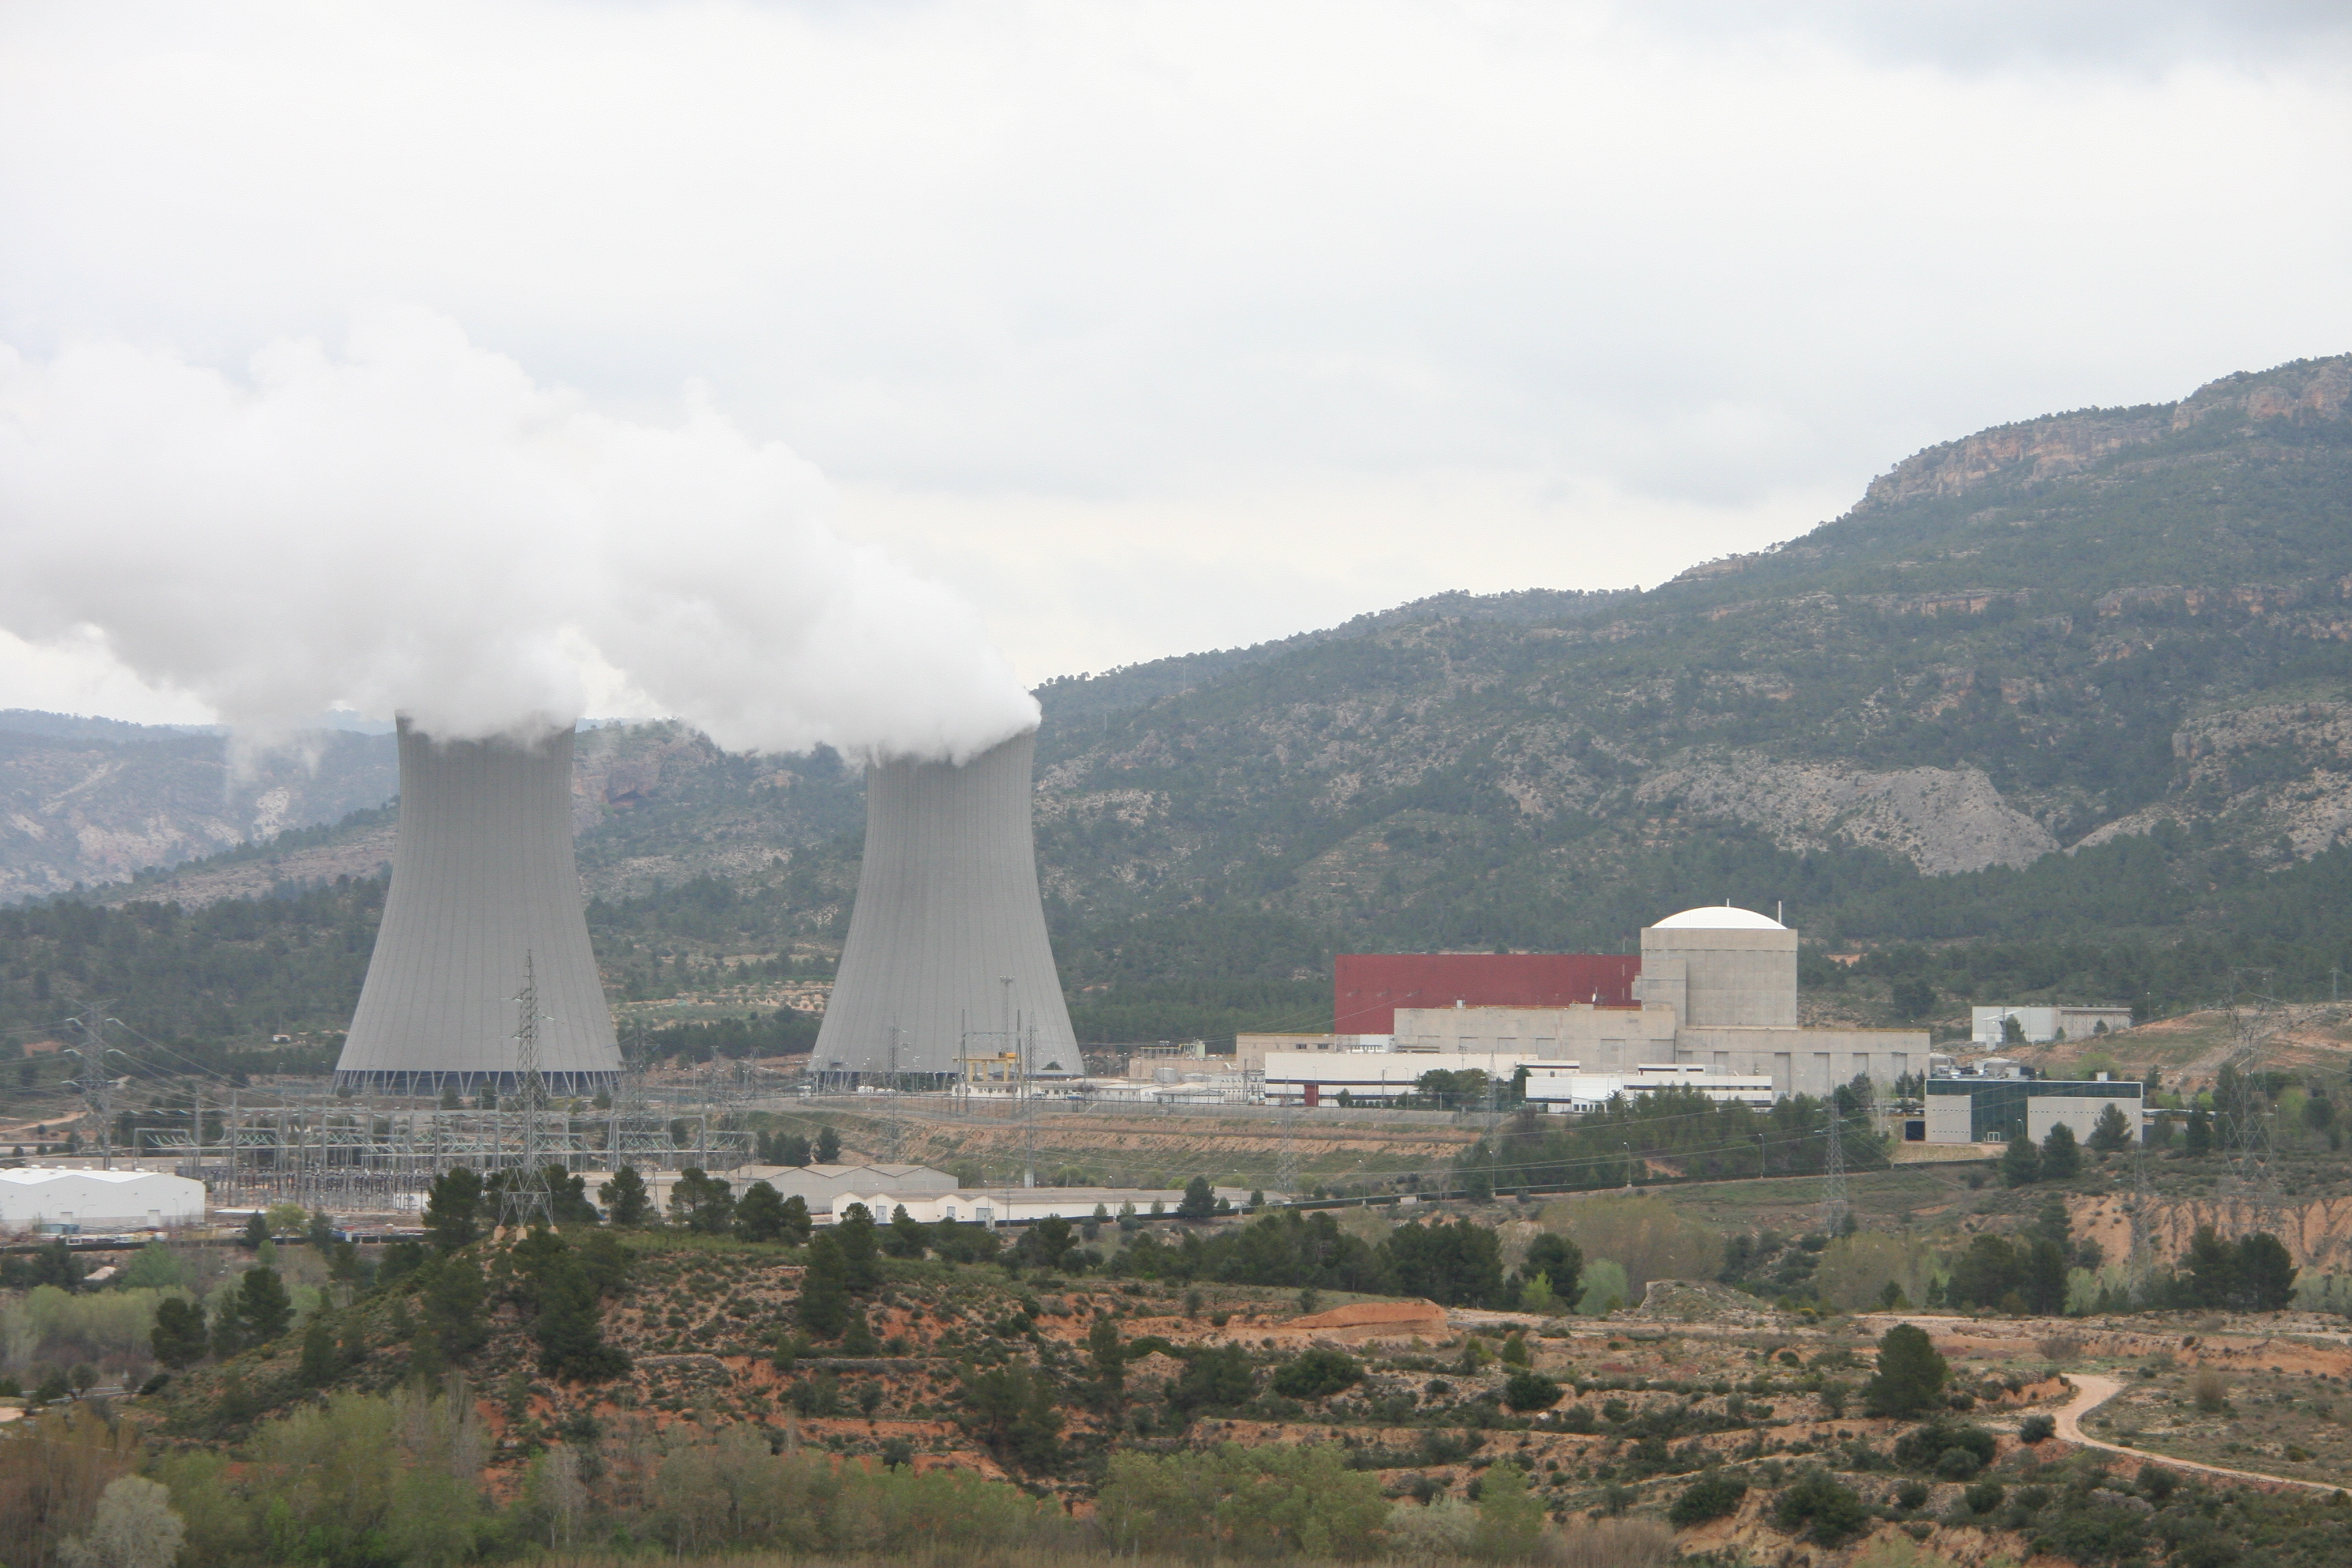 File:Cofrentes nuclear power plant - General view.JPG